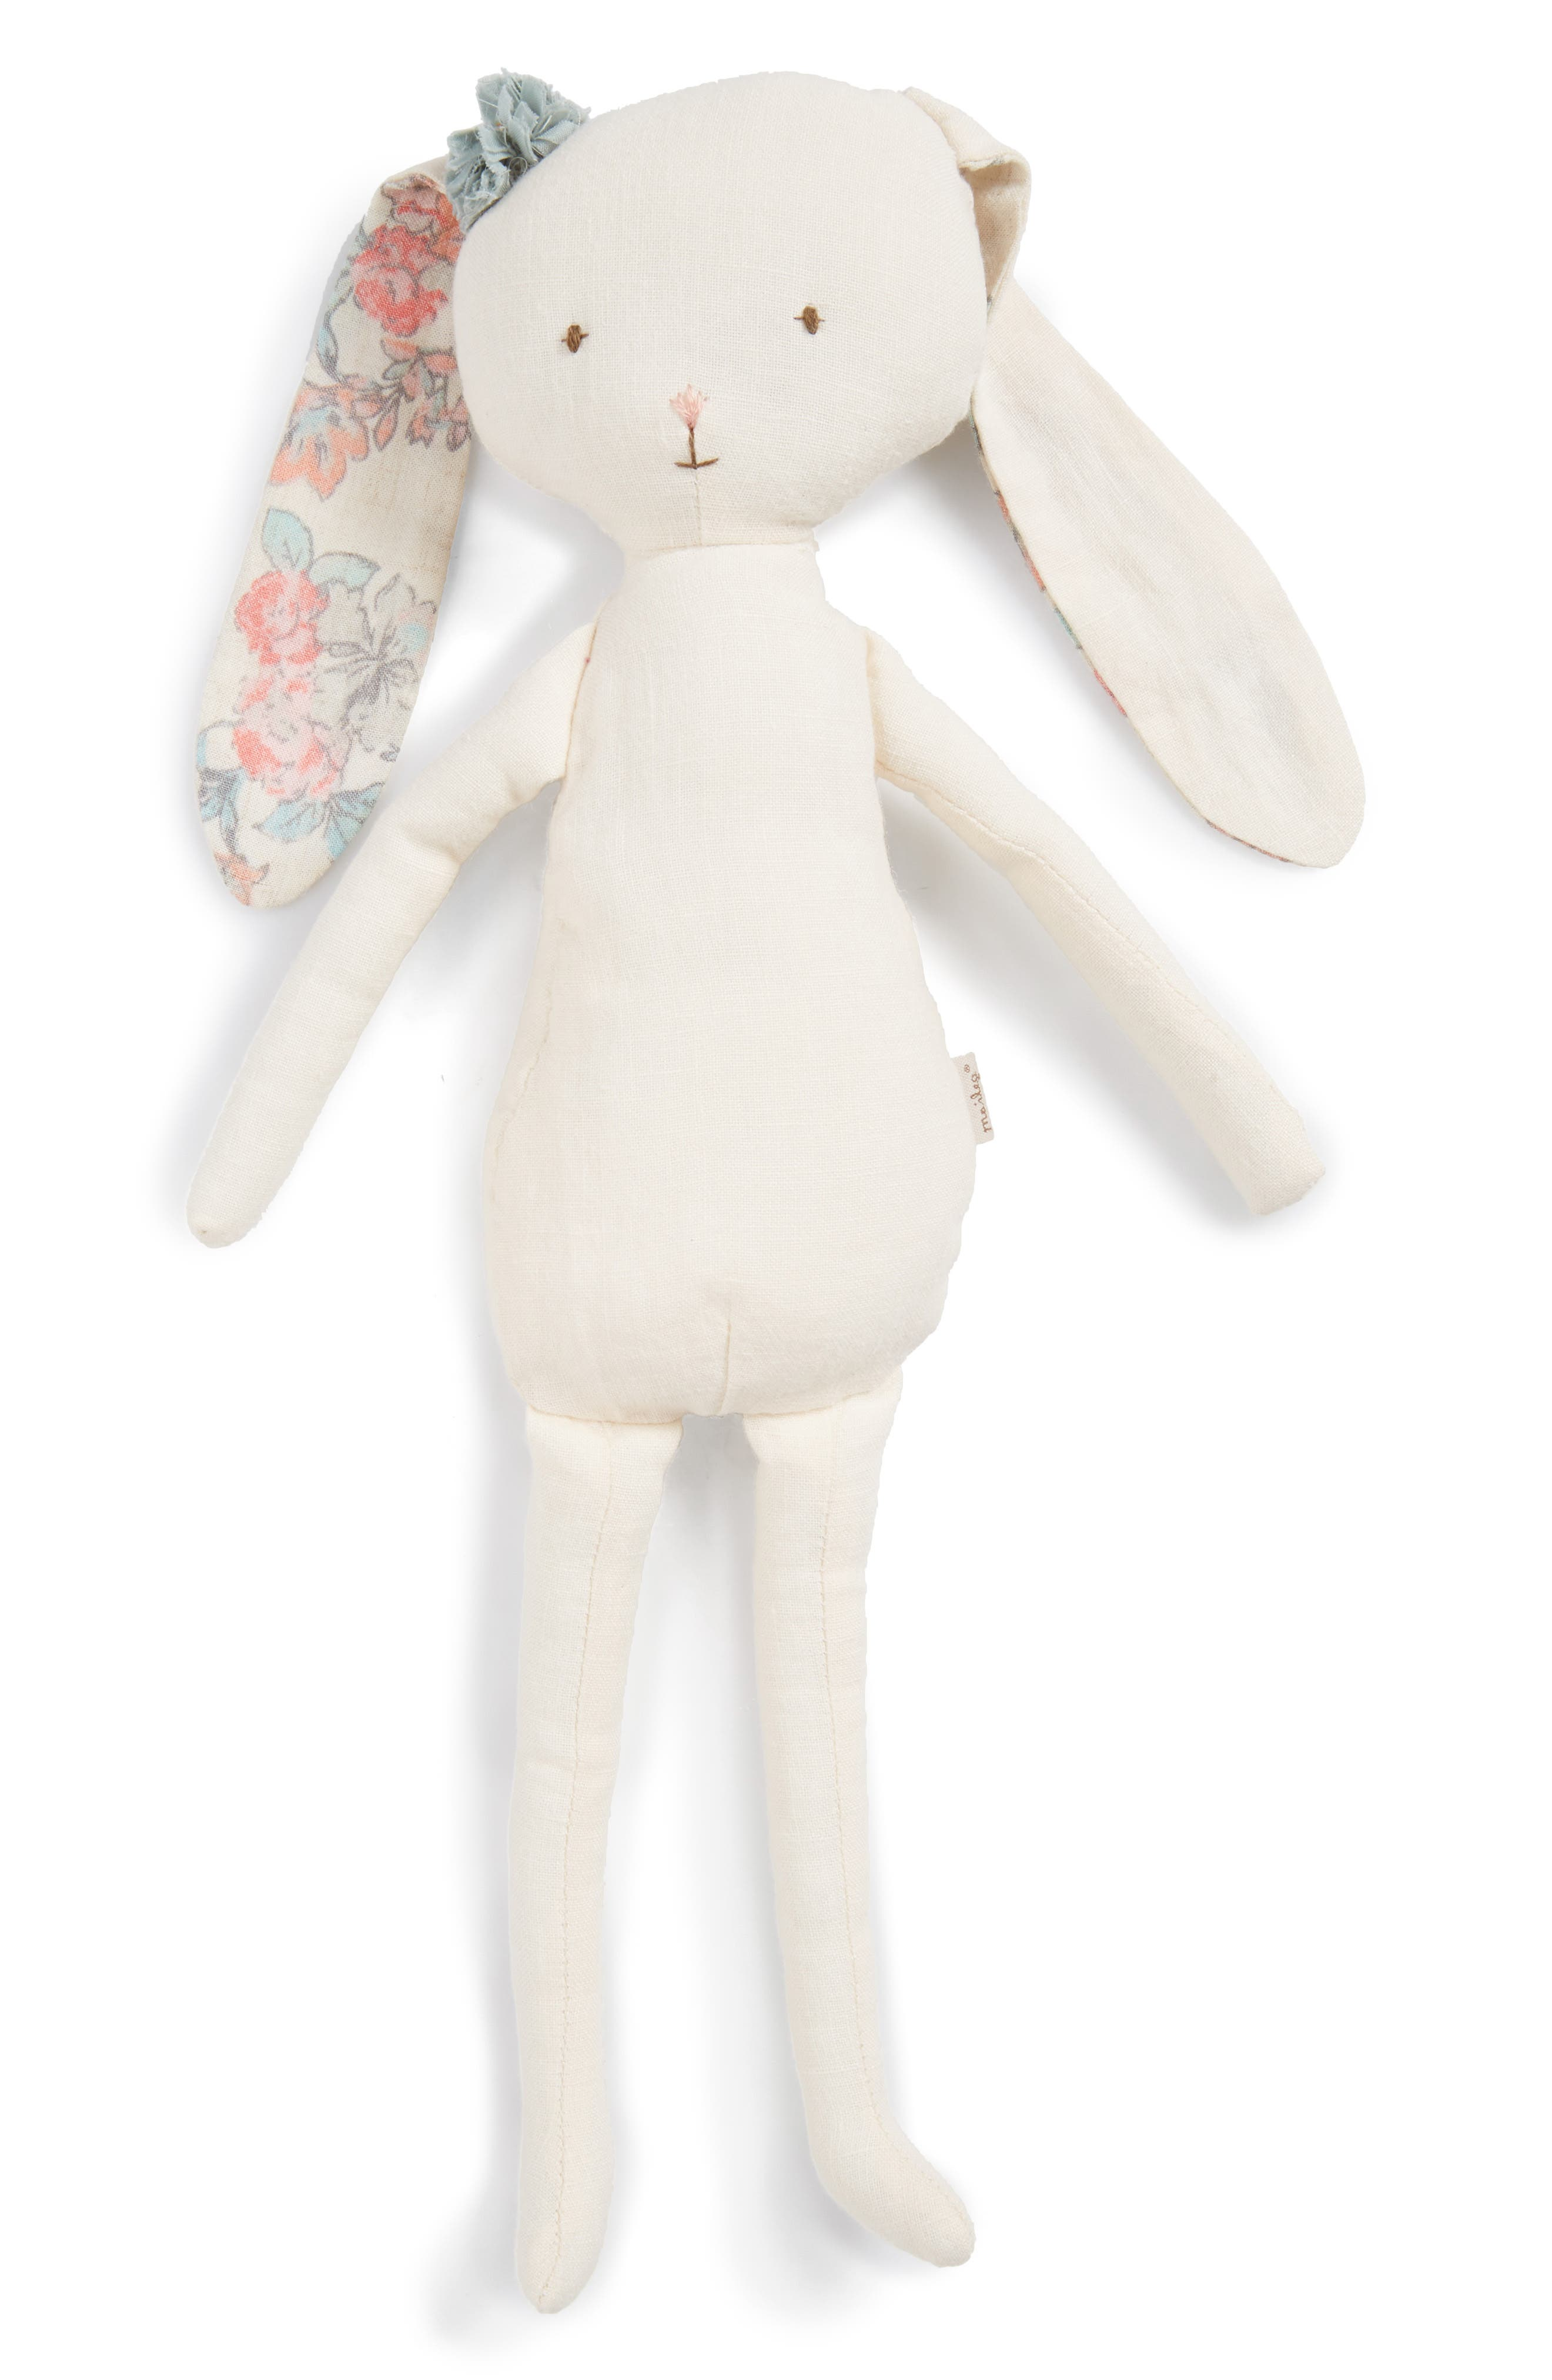 Best Friends Bunny Stuffed Animal,                             Main thumbnail 1, color,                             Ivory